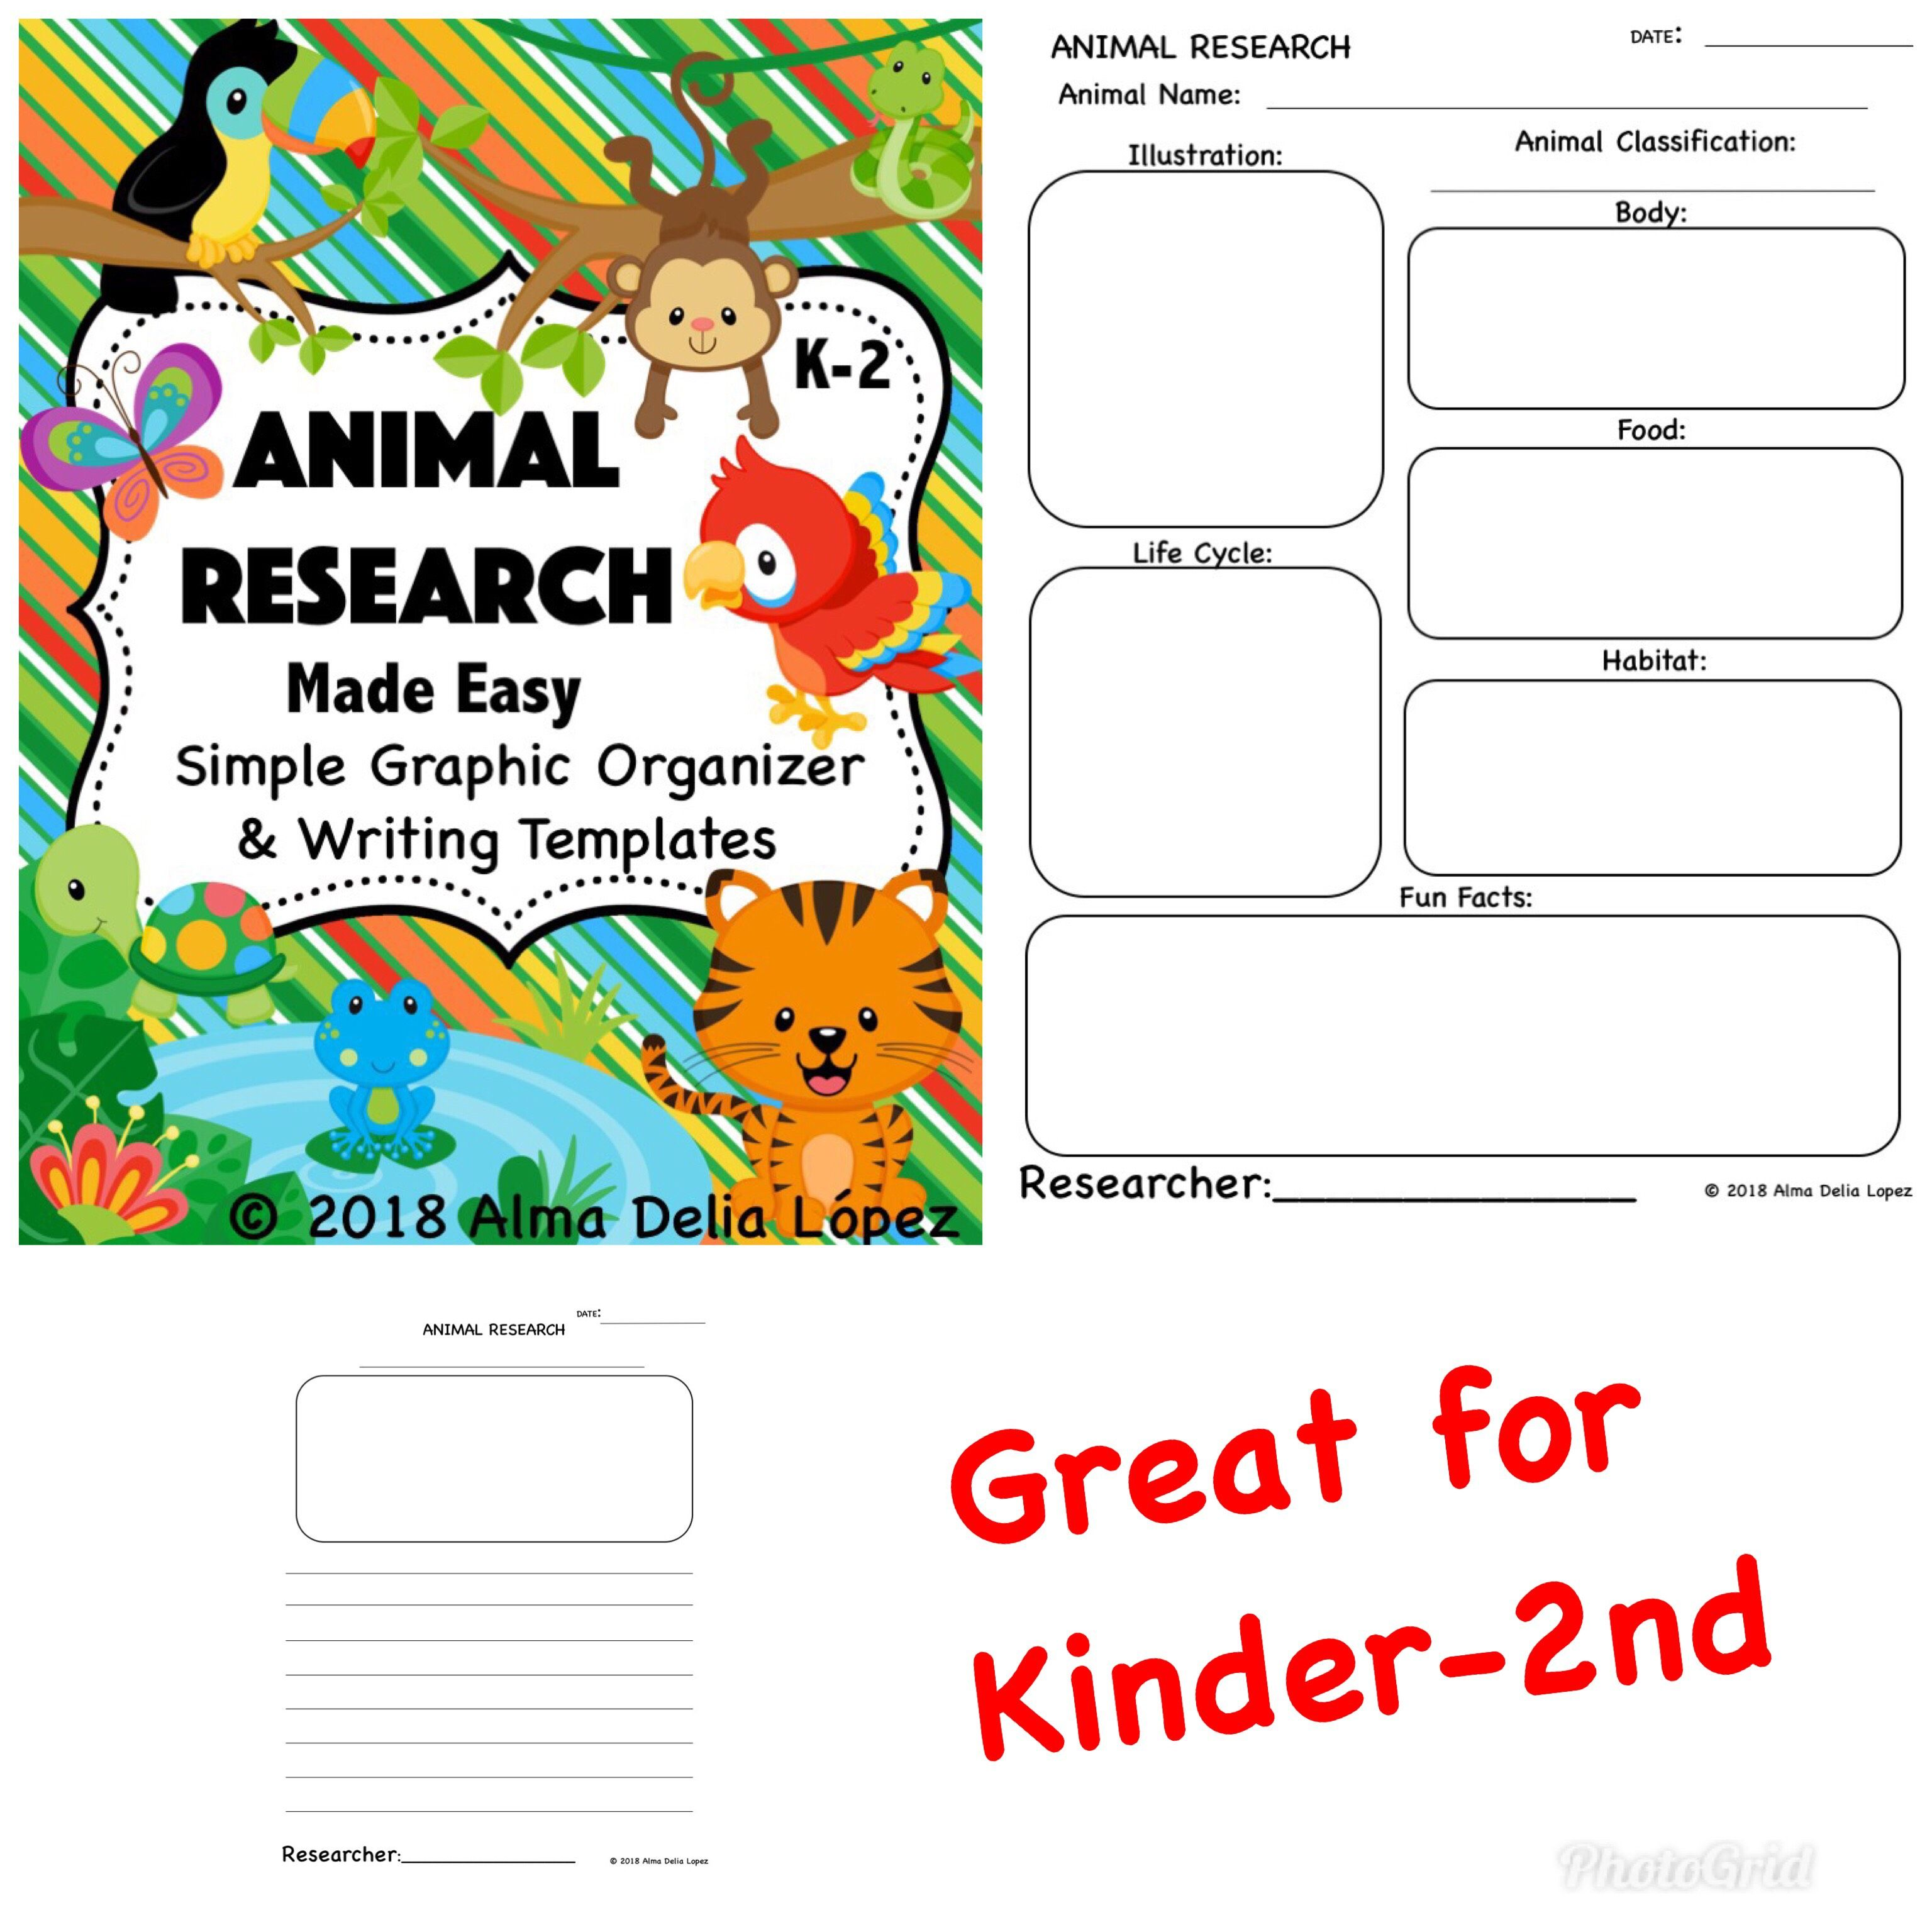 Animal Research Made Easy